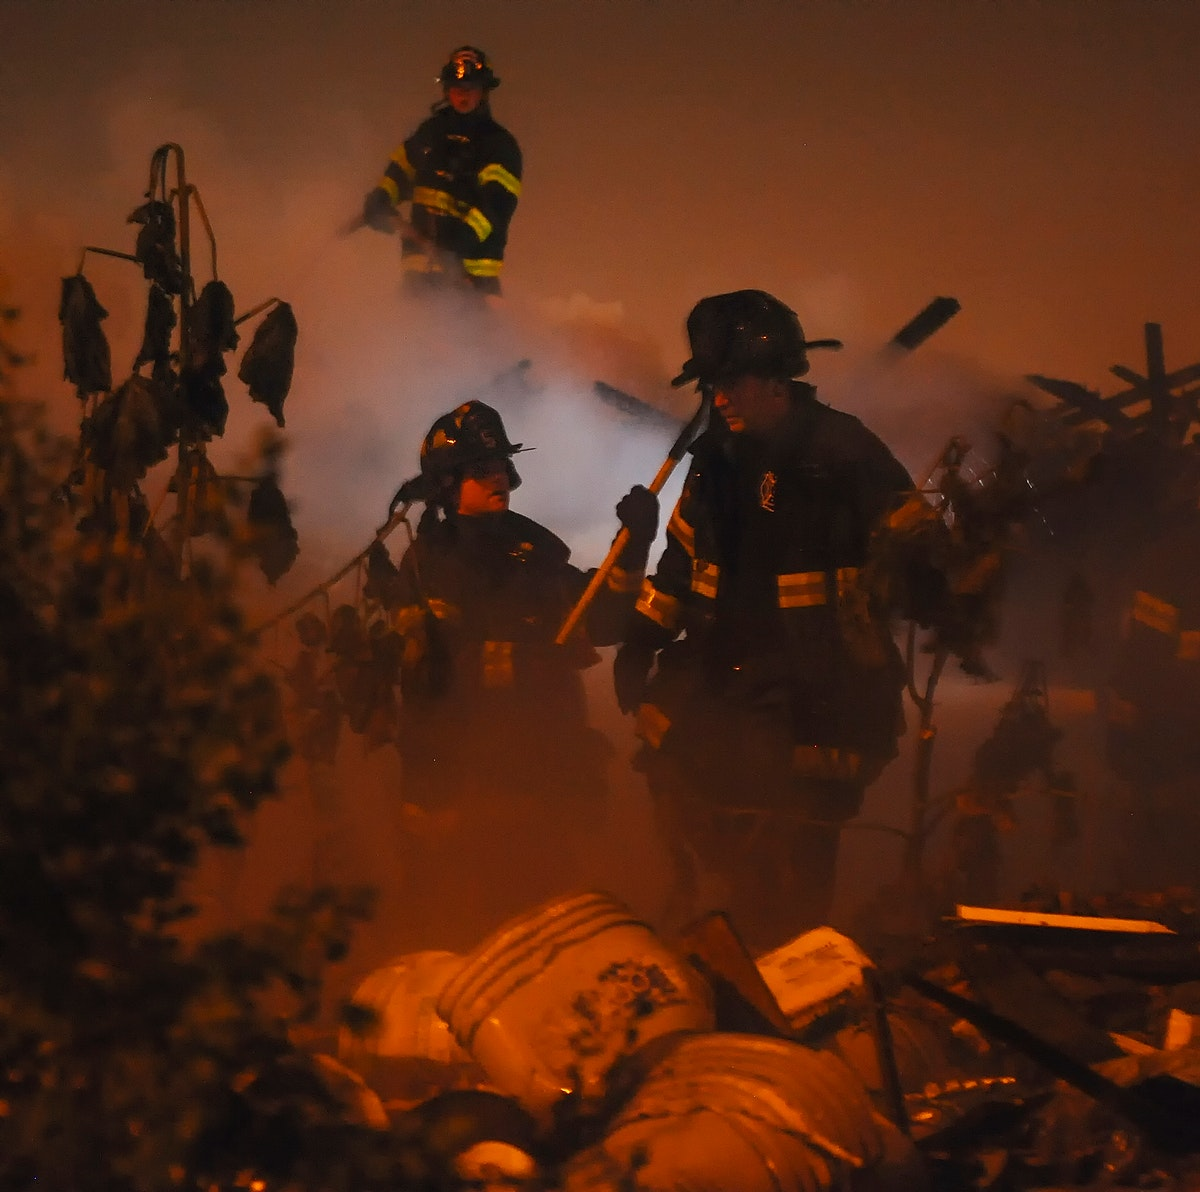 Fire Fighters assess the damage of a junk pile fire in Baltimore before overhauling the scene. Original public domain image…